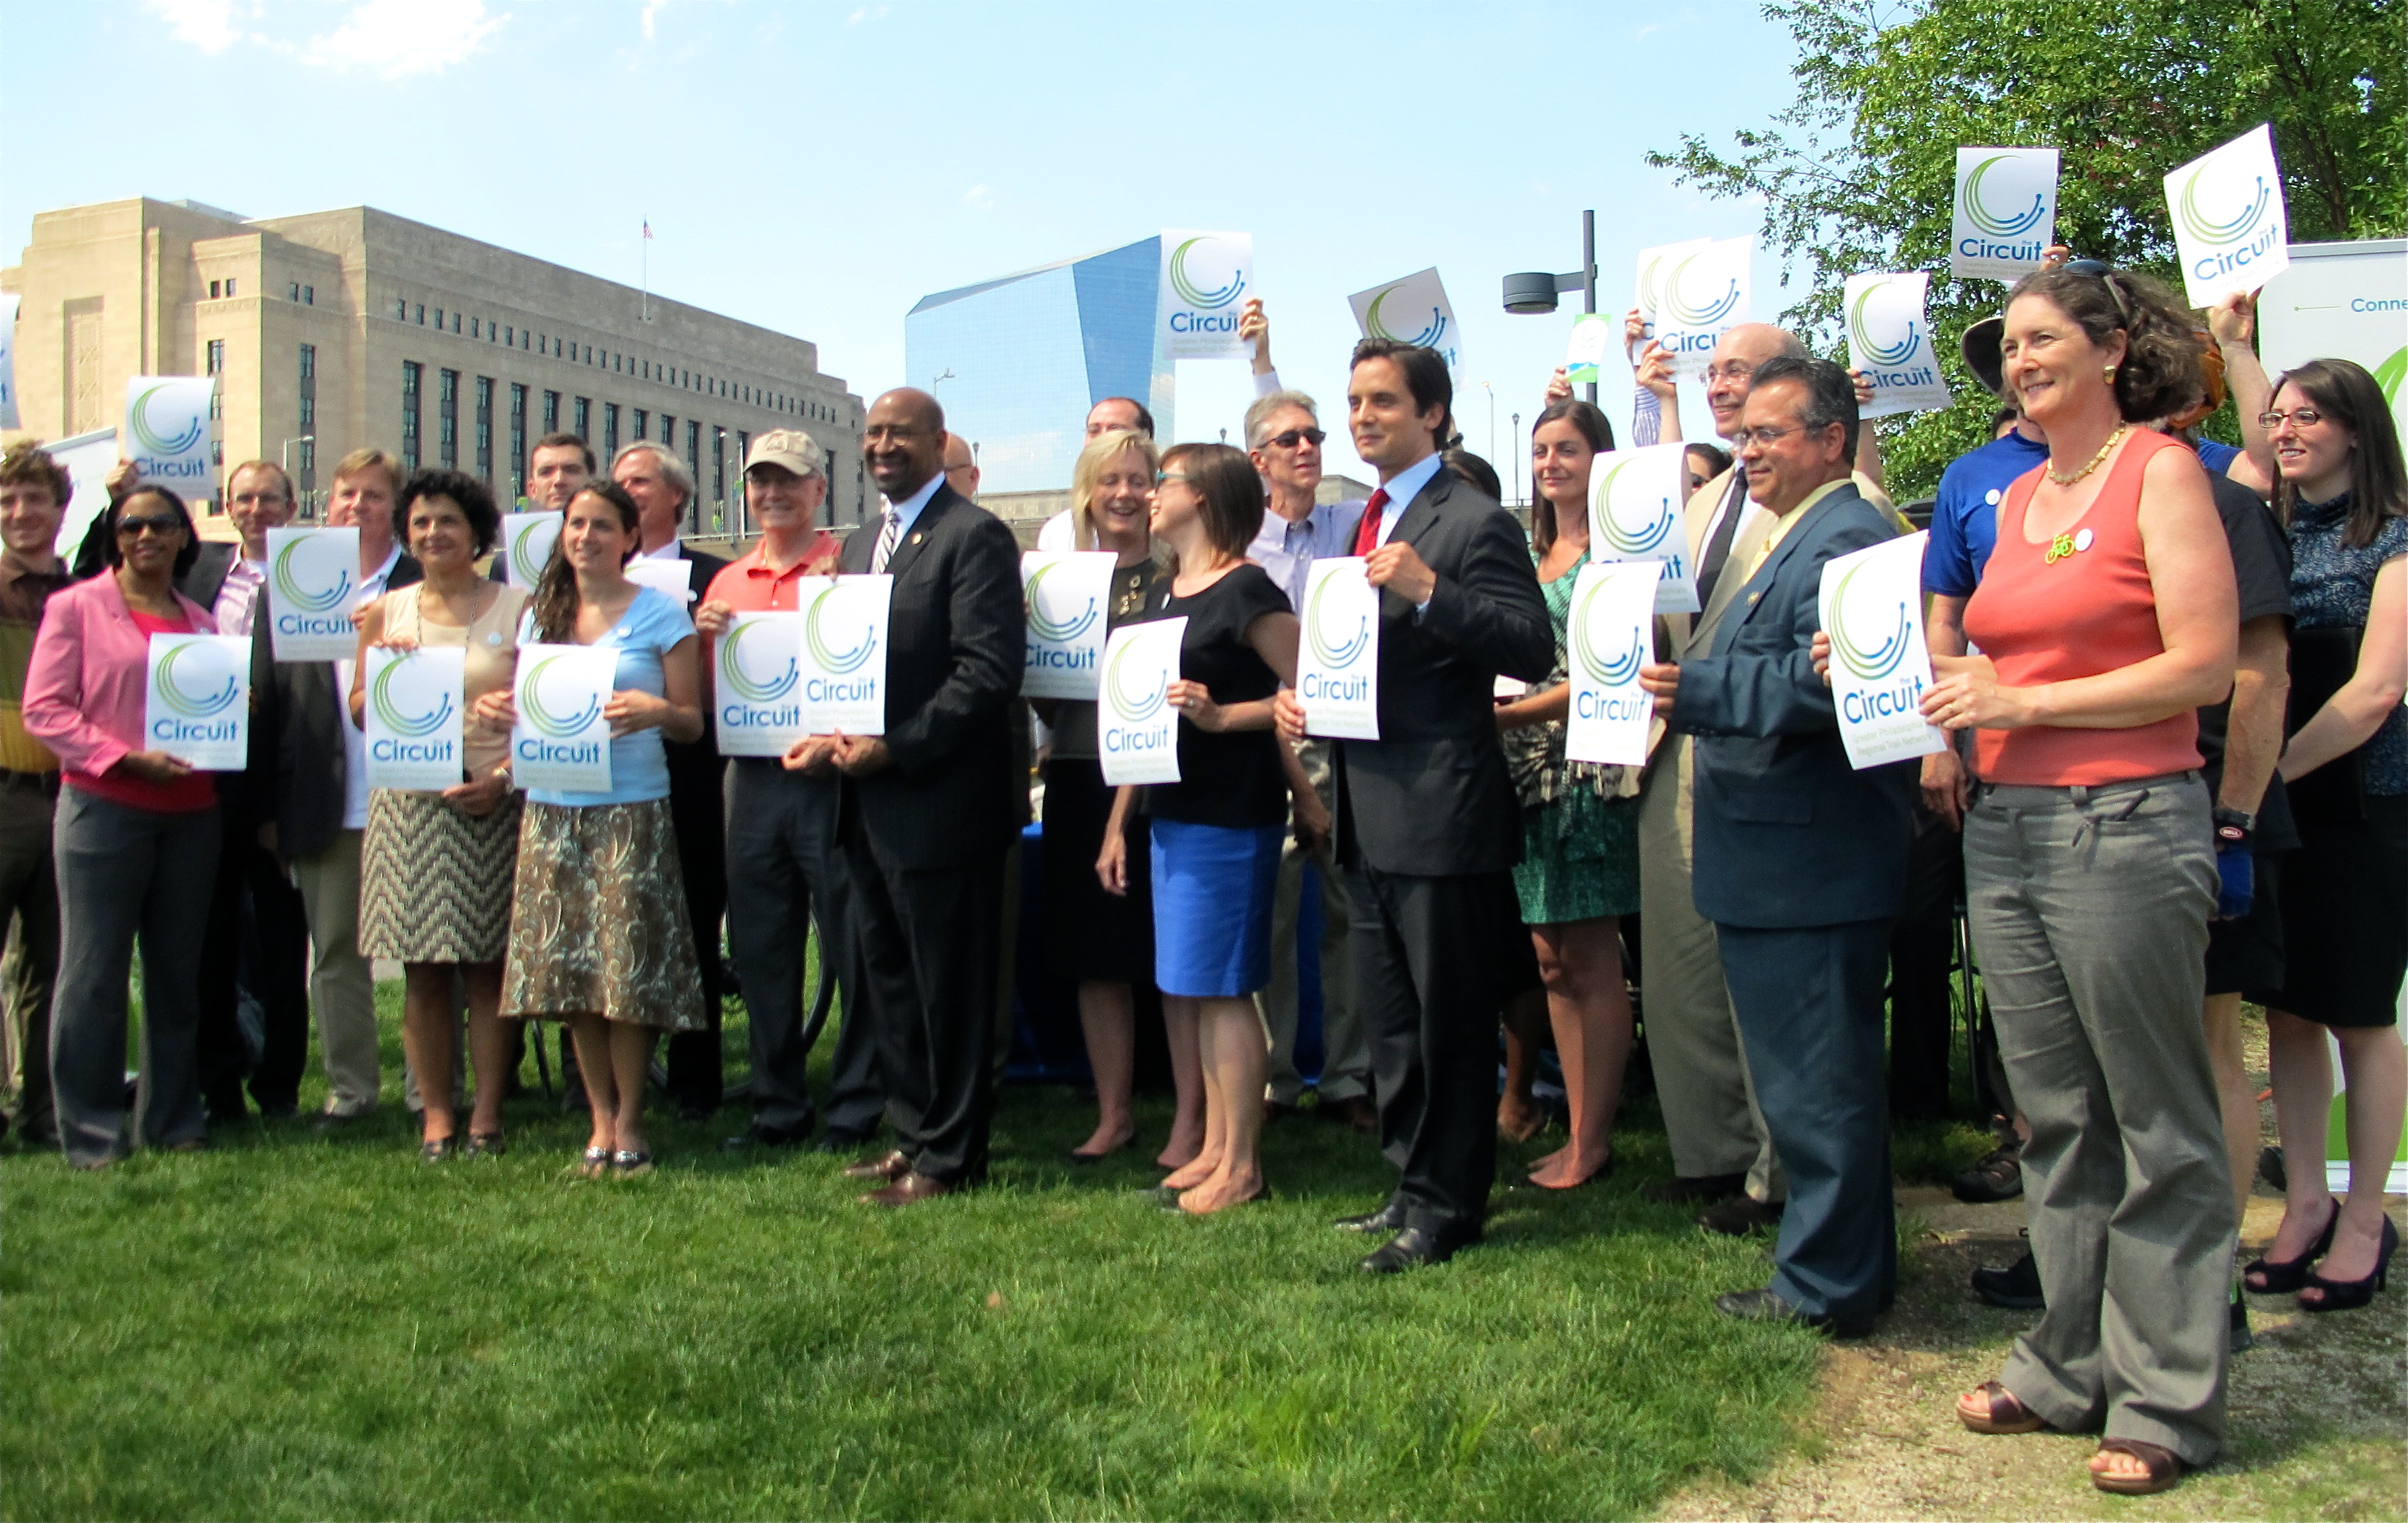 A big-tent coalition gathered at the Schuylkill Banks Thursday to announce The Circuit.